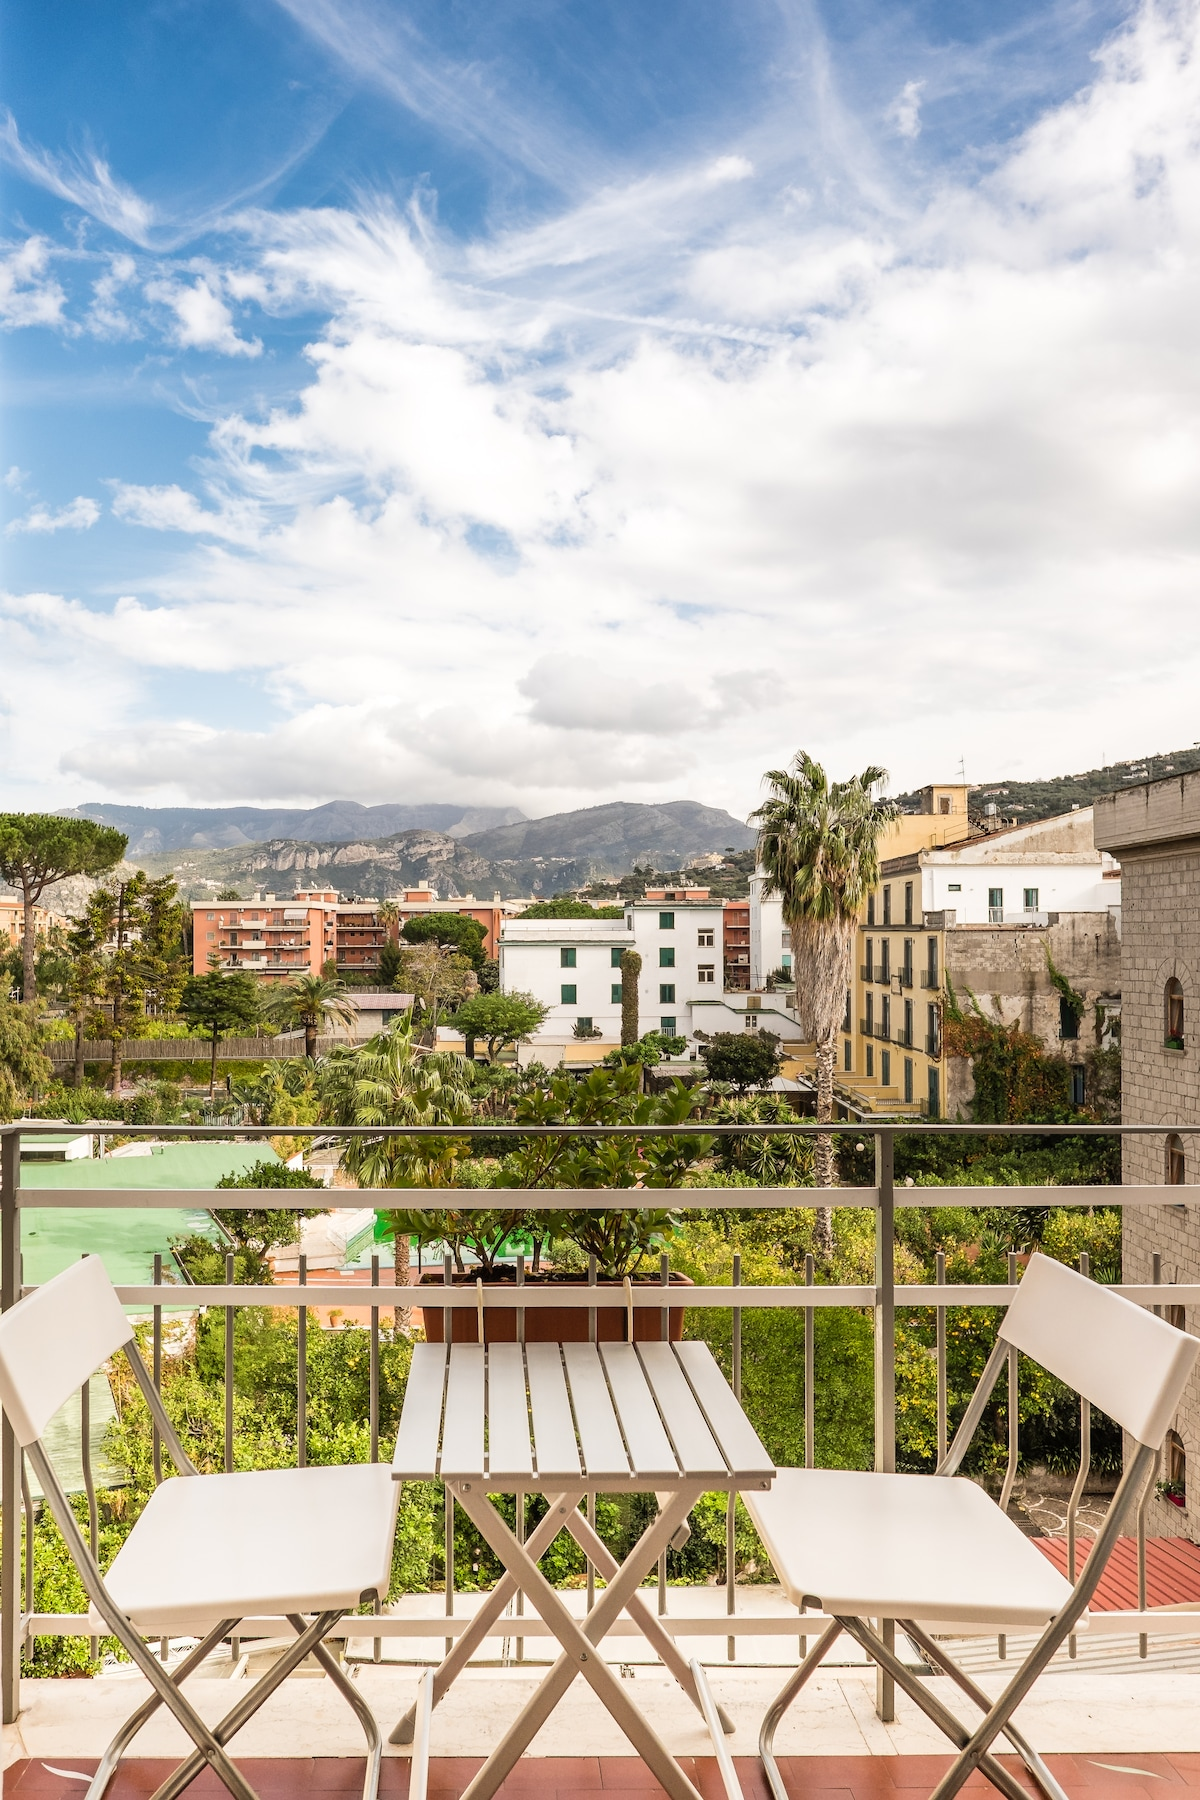 Apartment in the heart of Sorrento